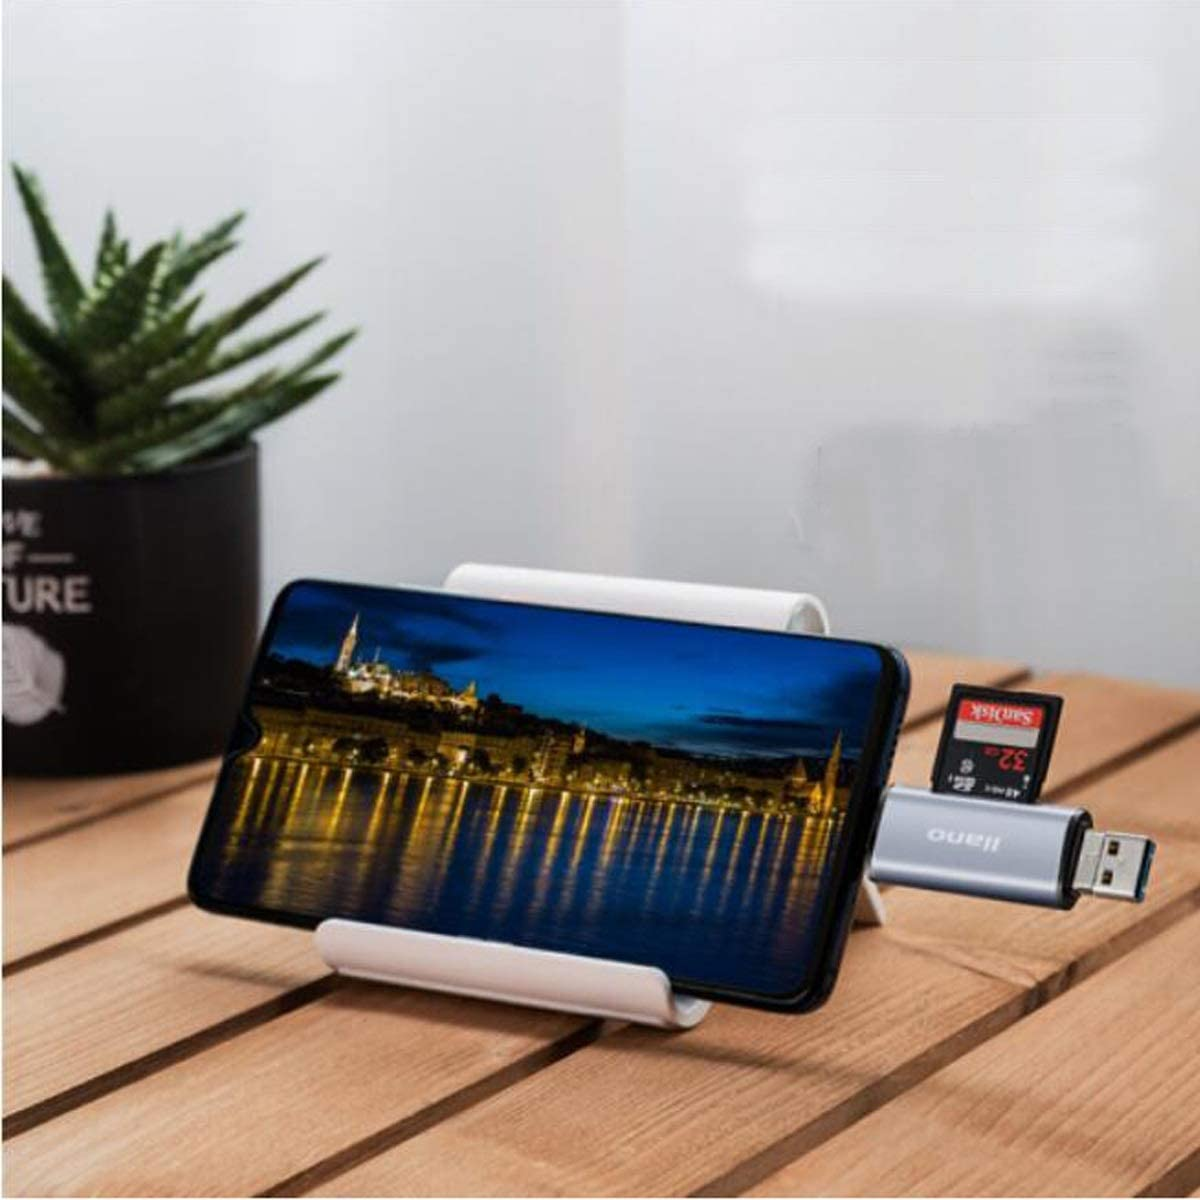 USB3.0 Card Reader Aishanghuayi Card Reader Color : Gray Multi-Function 5-in-1 Mobile Phone Card Reader